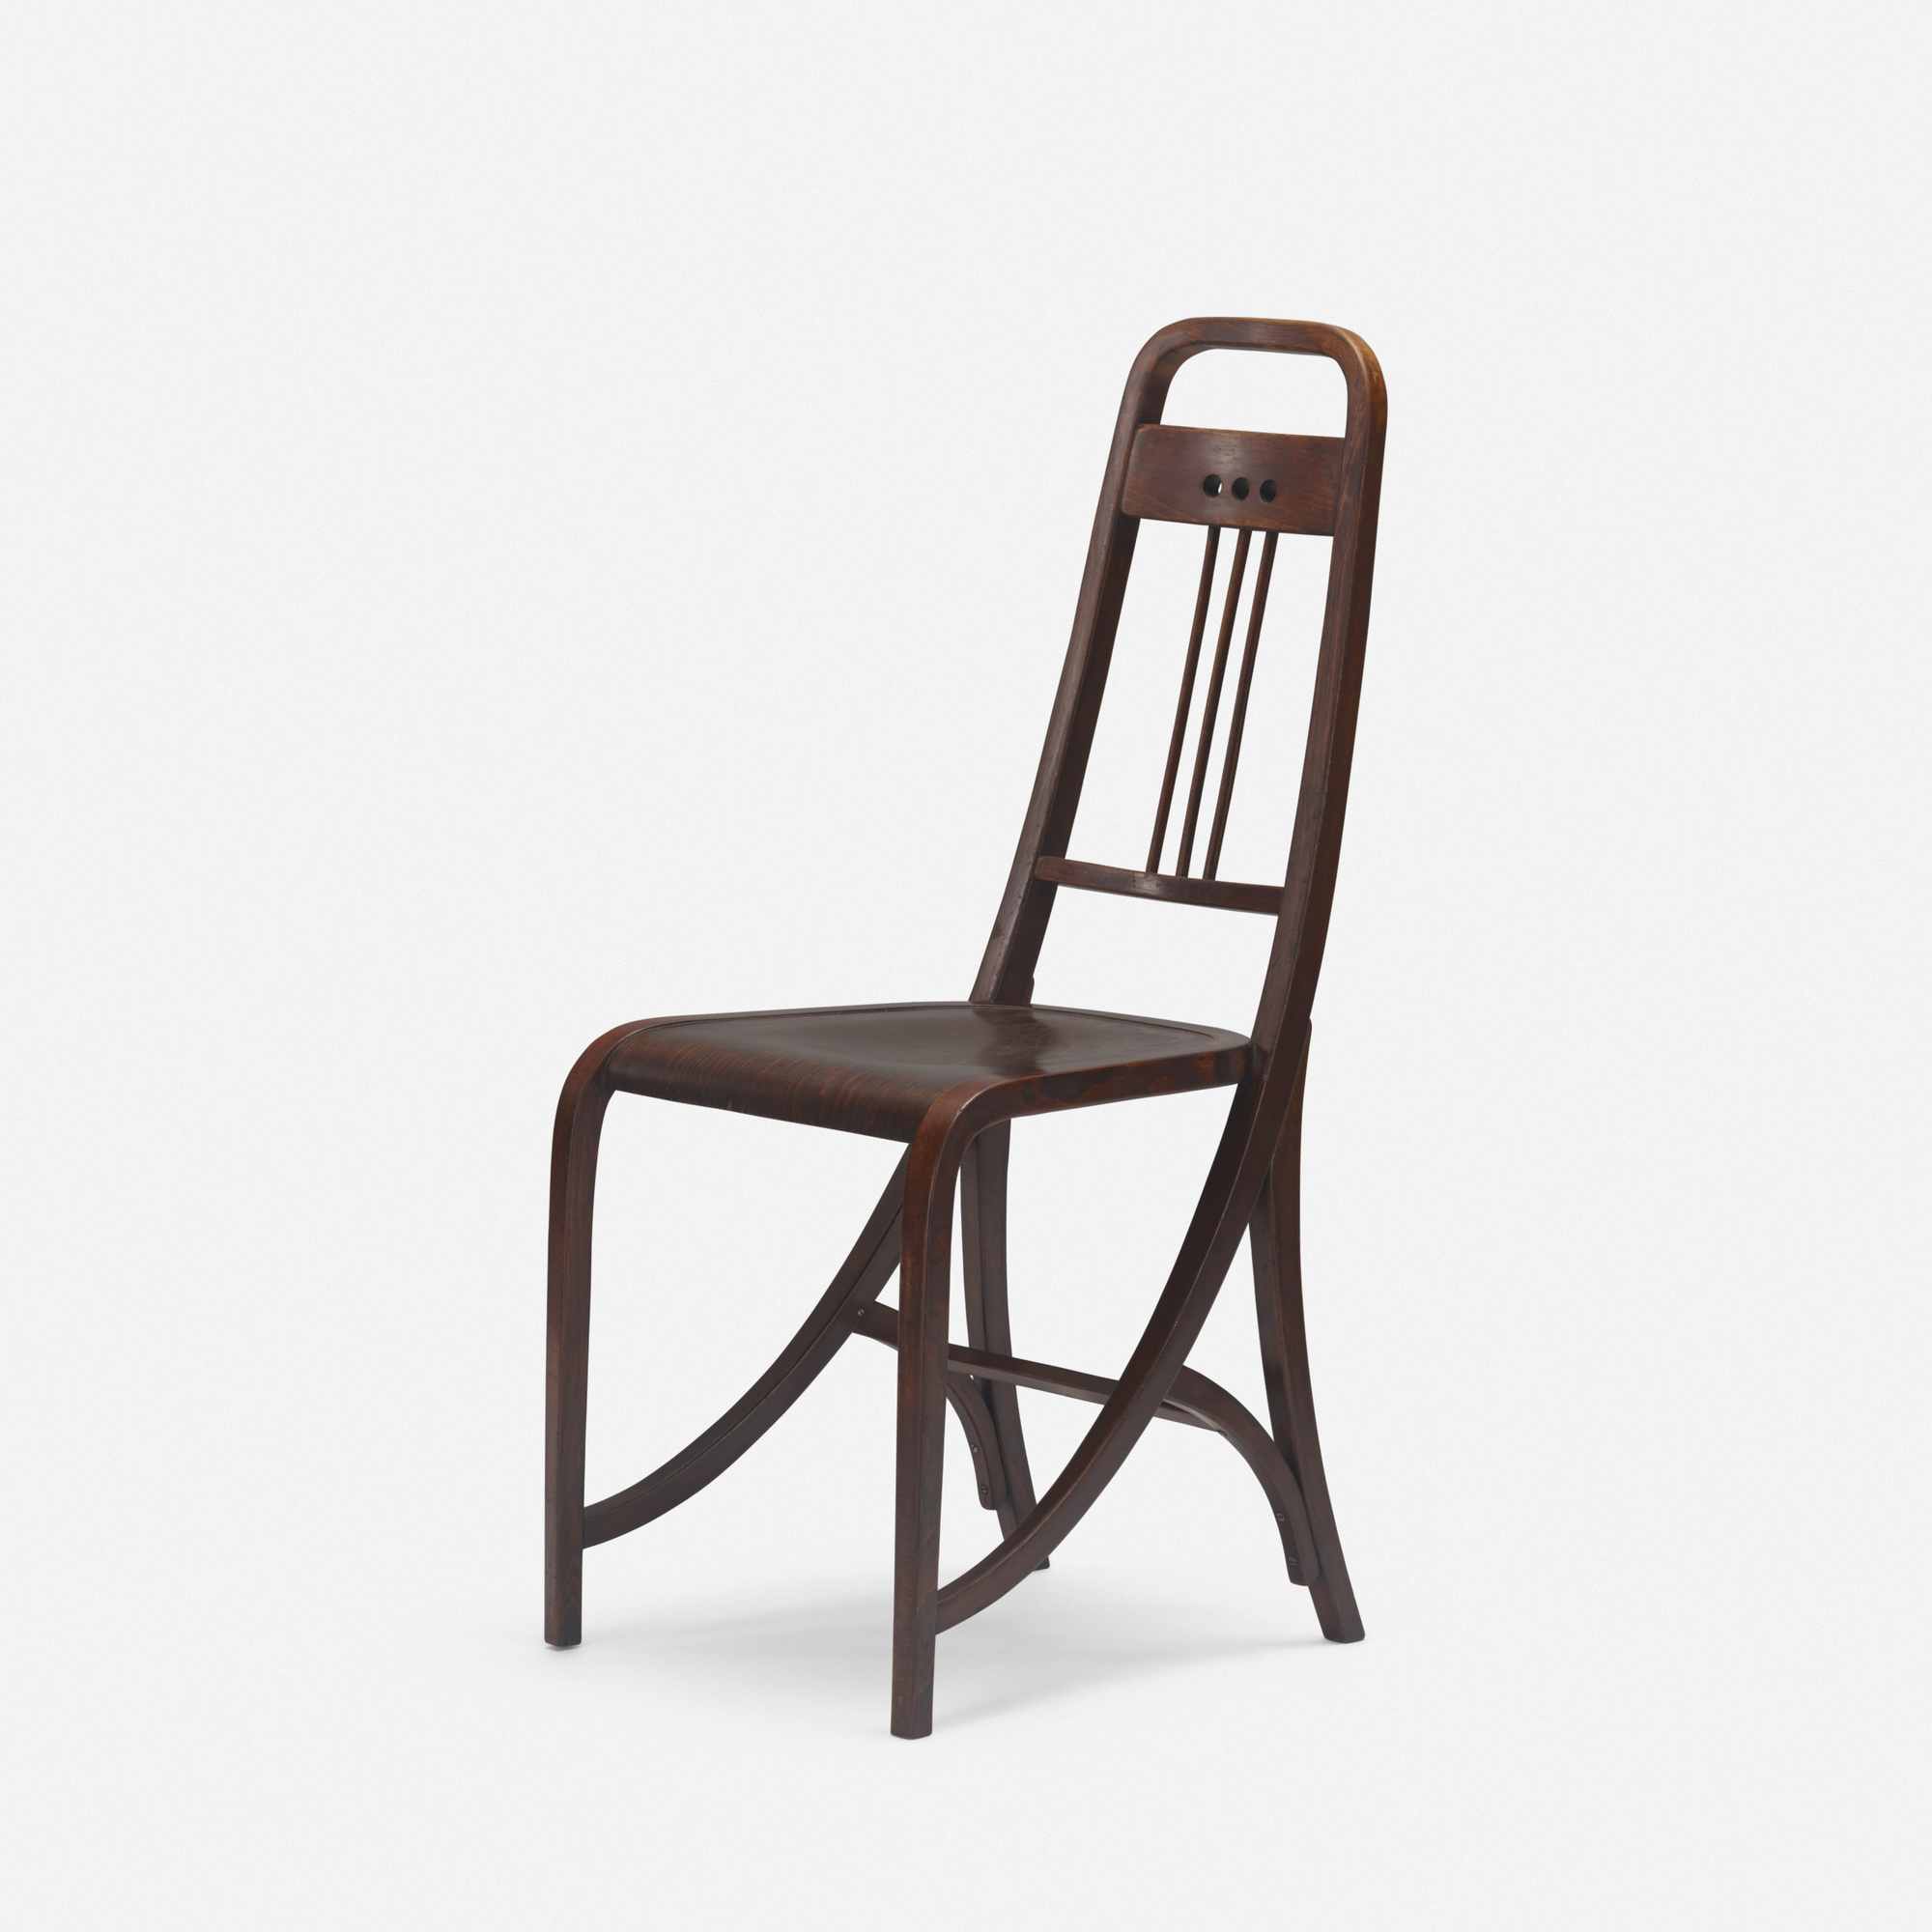 242: Thonet / chair, model 511 (1 of 4)